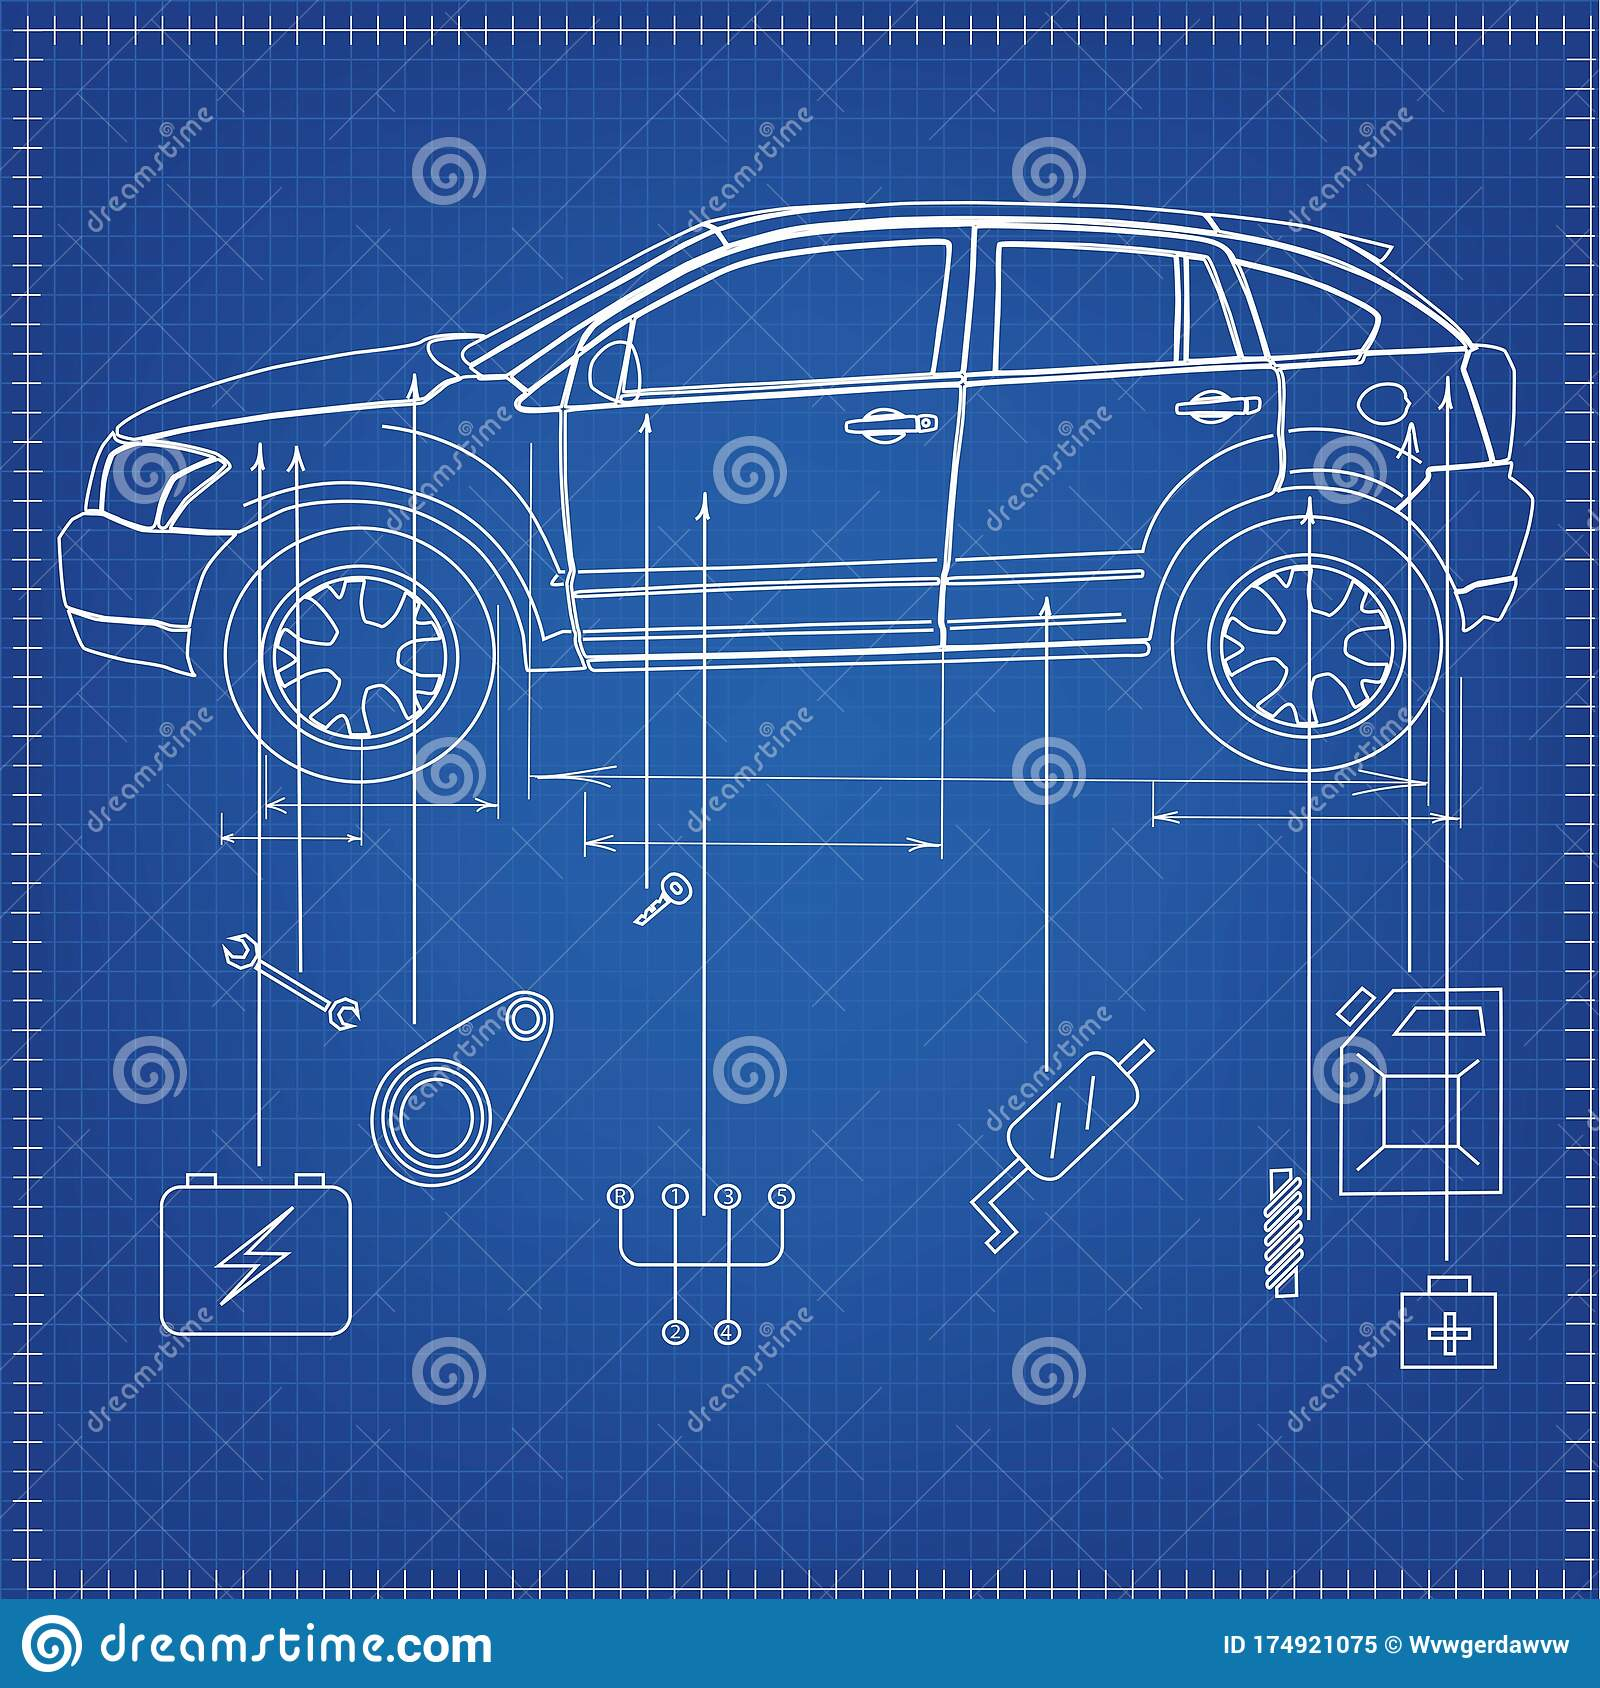 Diagram Of The Vehicle With Parts And Spare Parts On A Blue ...